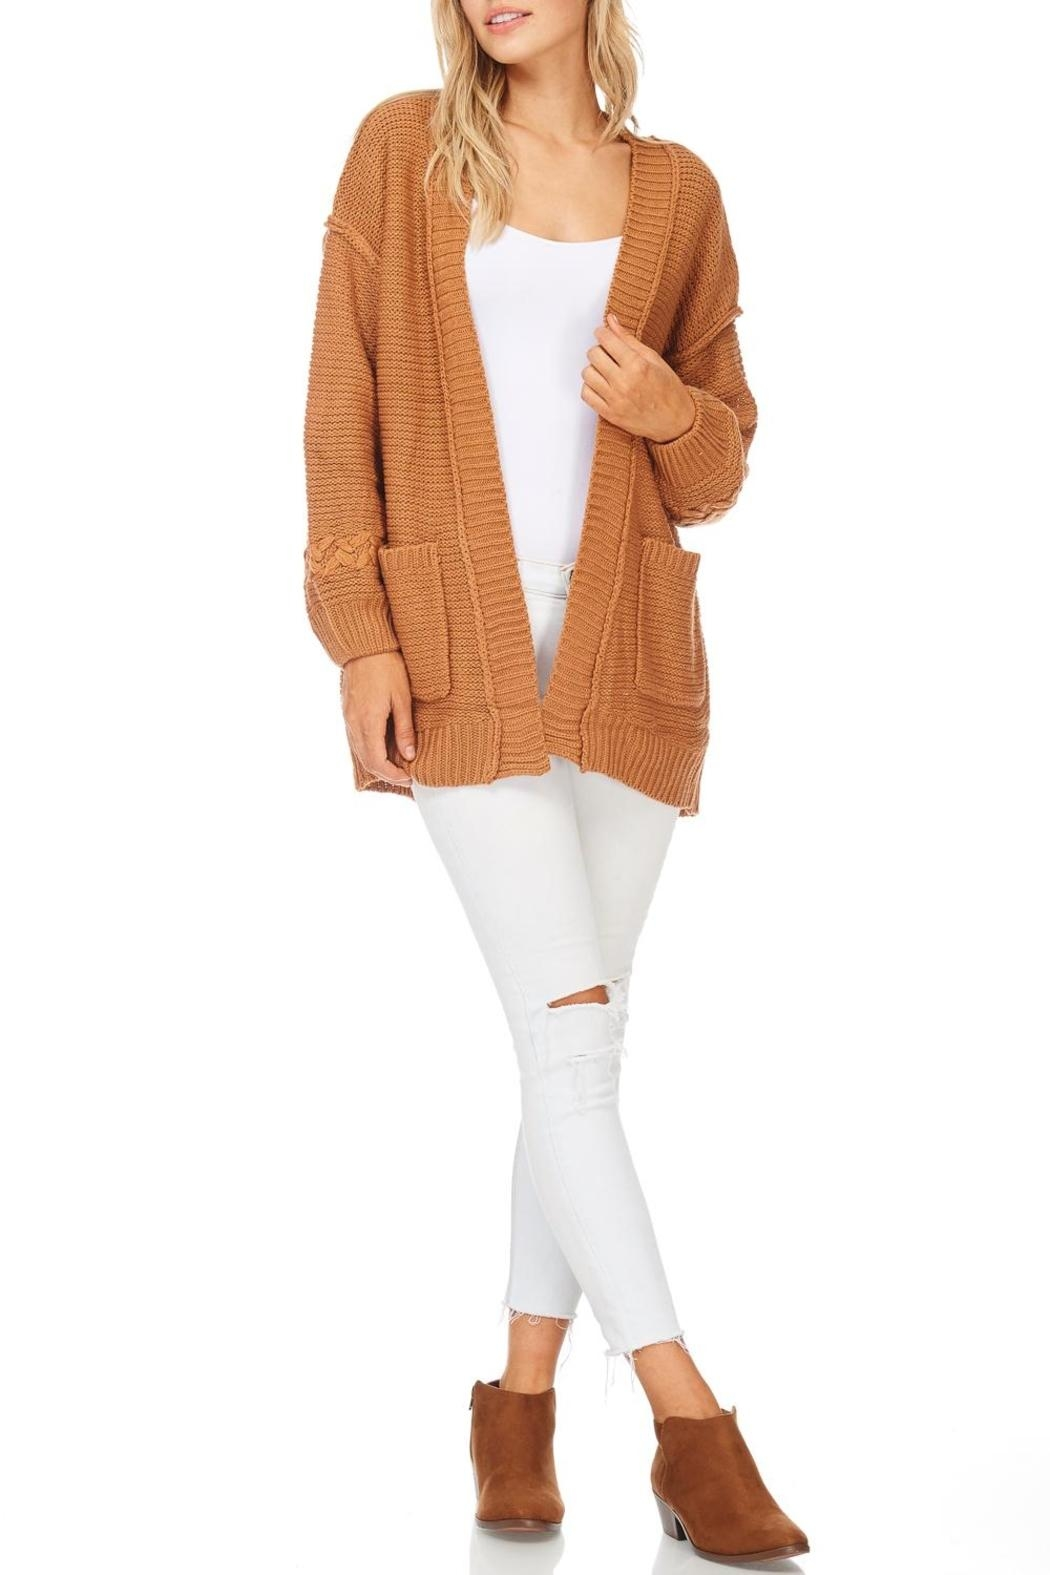 LoveRiche Camel Boyfriend Cardigan - Front Cropped Image